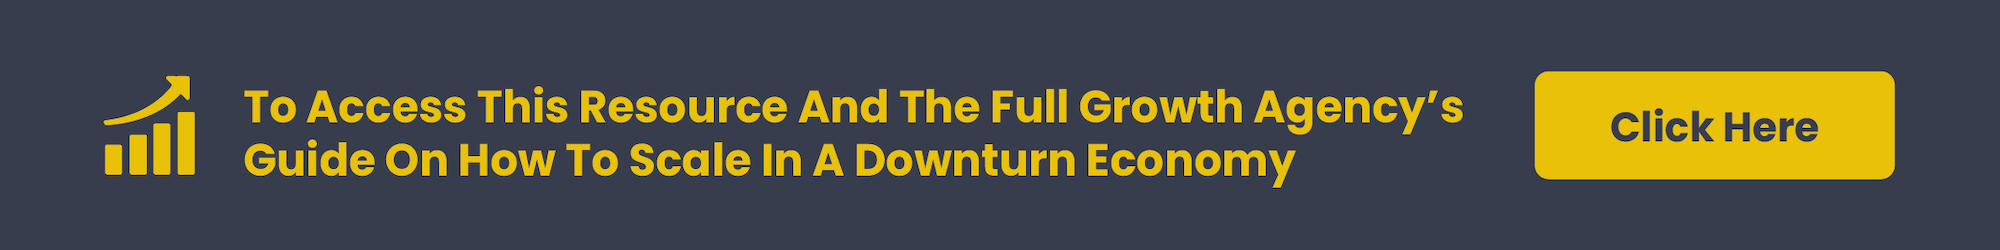 6t30 - Downturn Econoy - P1 - Download Guide CTA